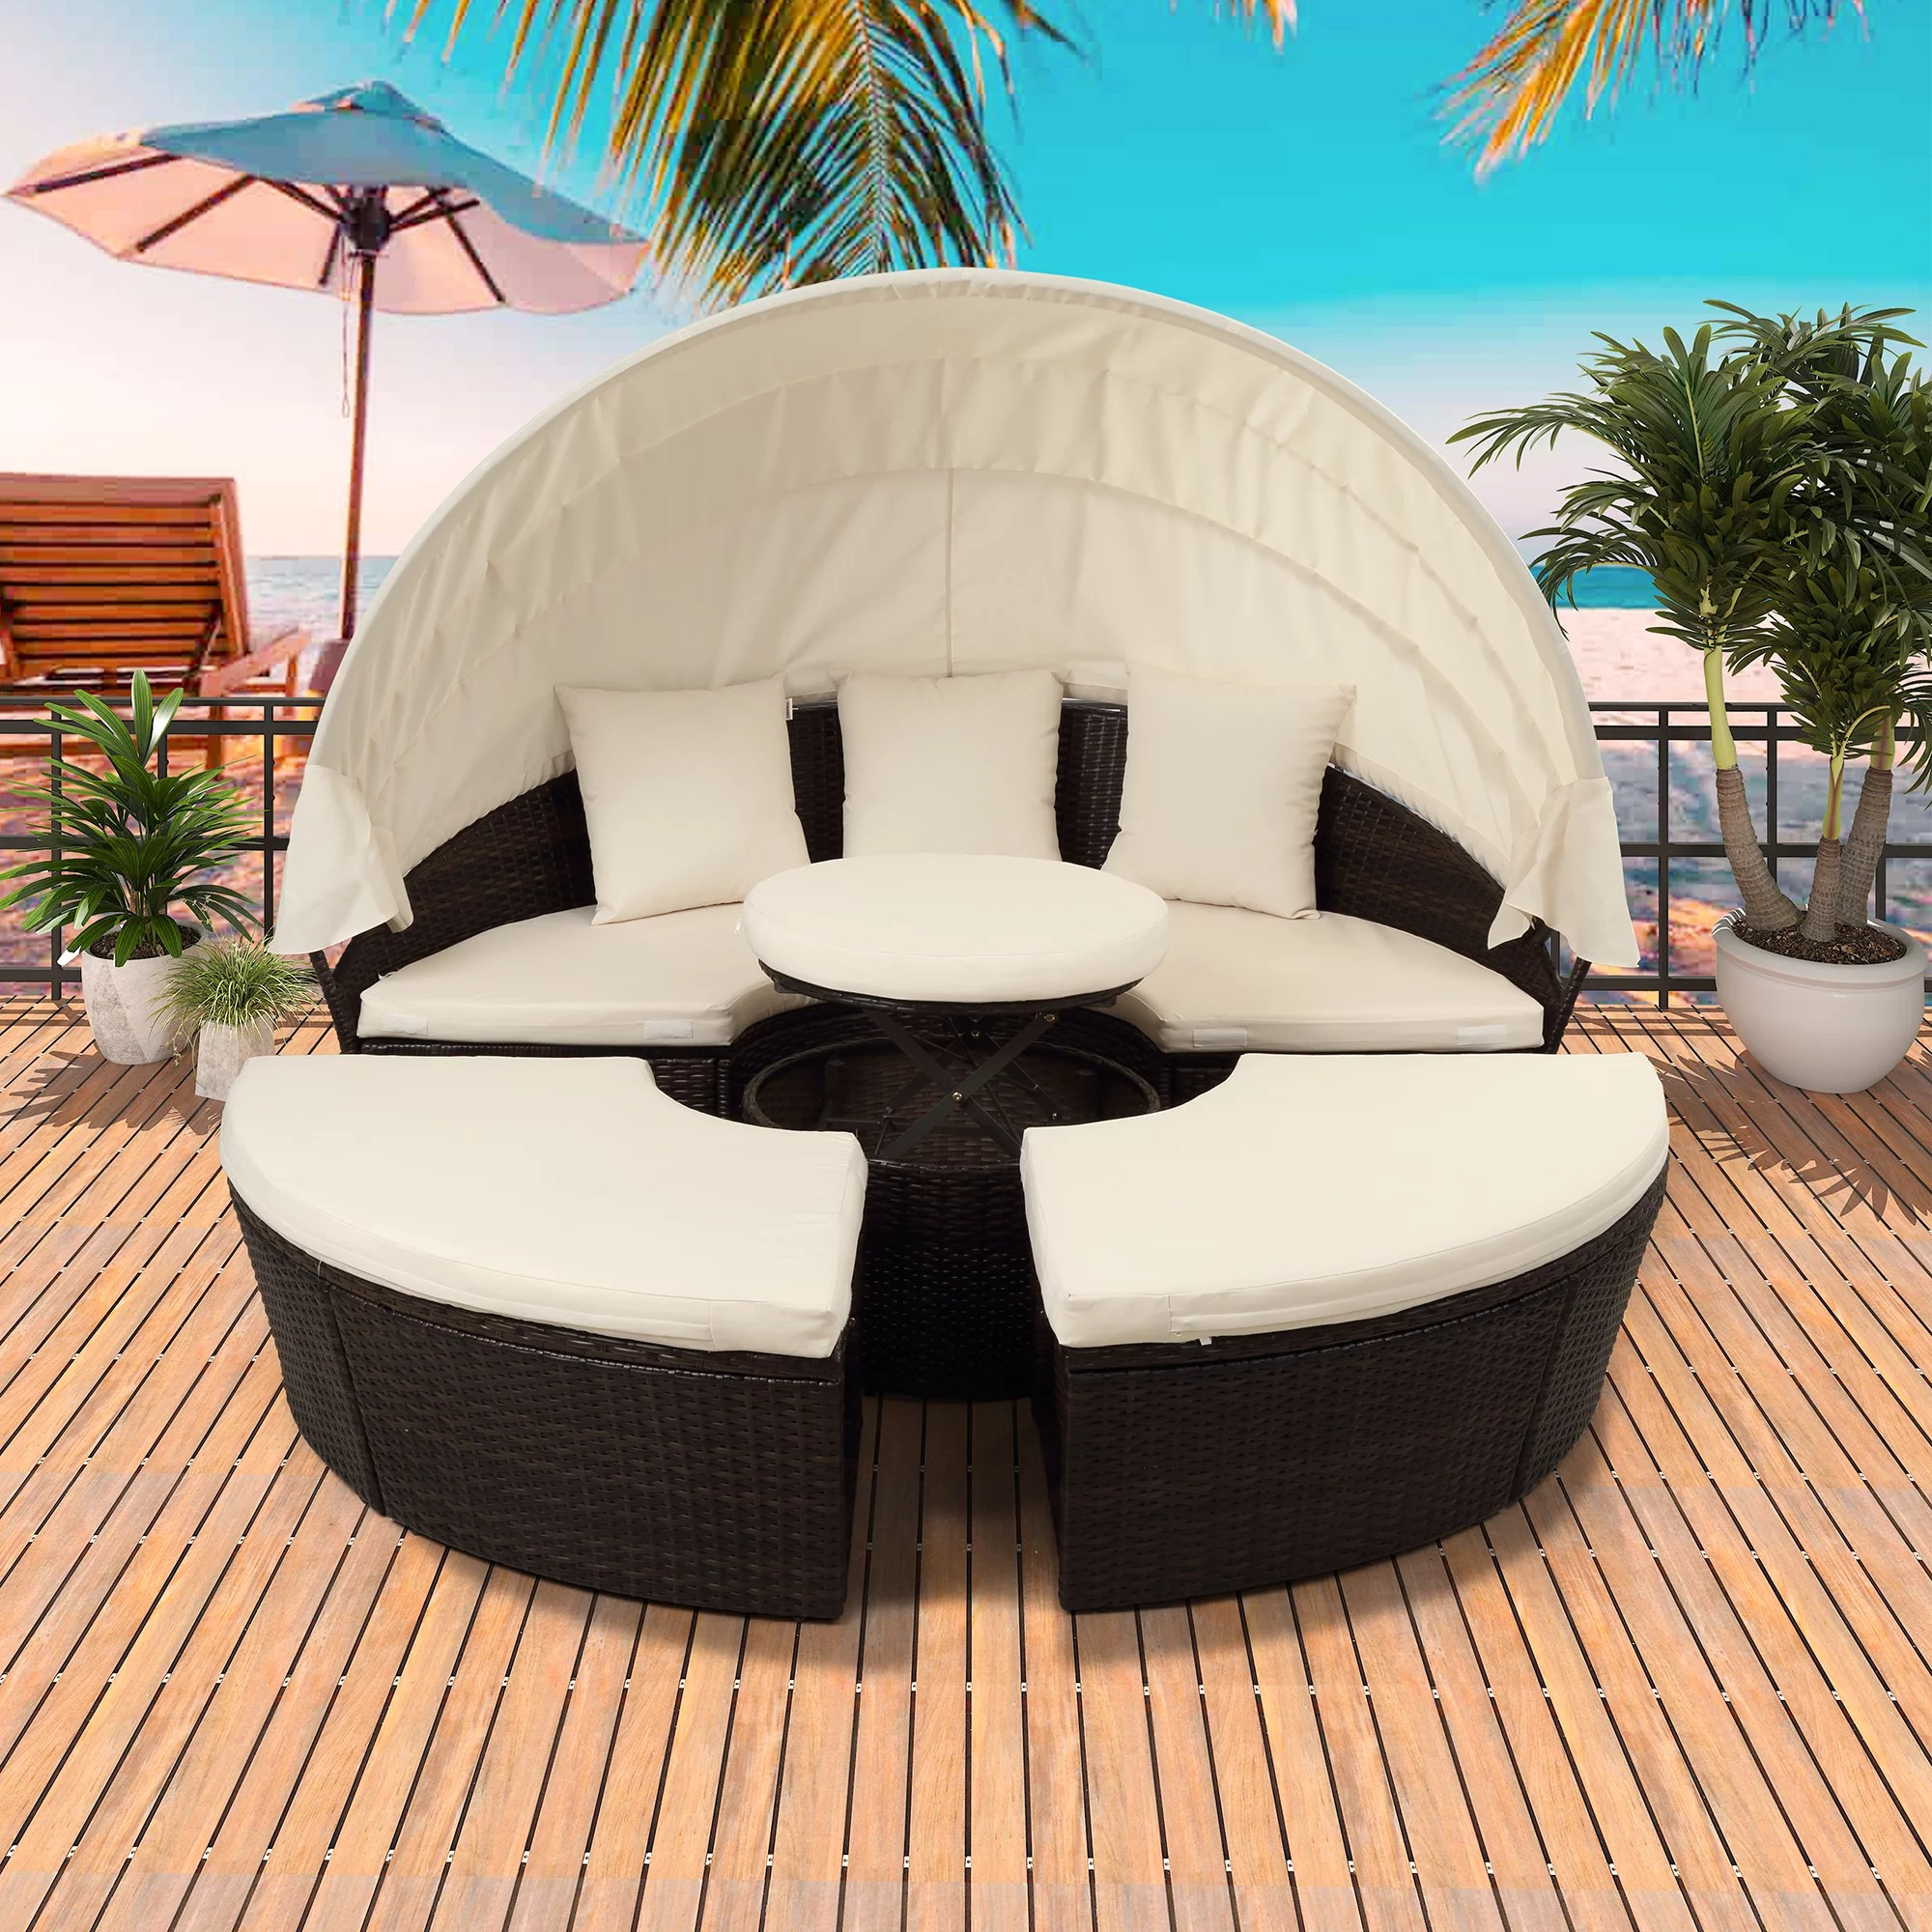 Patio Daybed Clearance 5 Piece Patio Furniture Sets Round Wicker Daybed With Retractable - Garden Furniture Clearance York